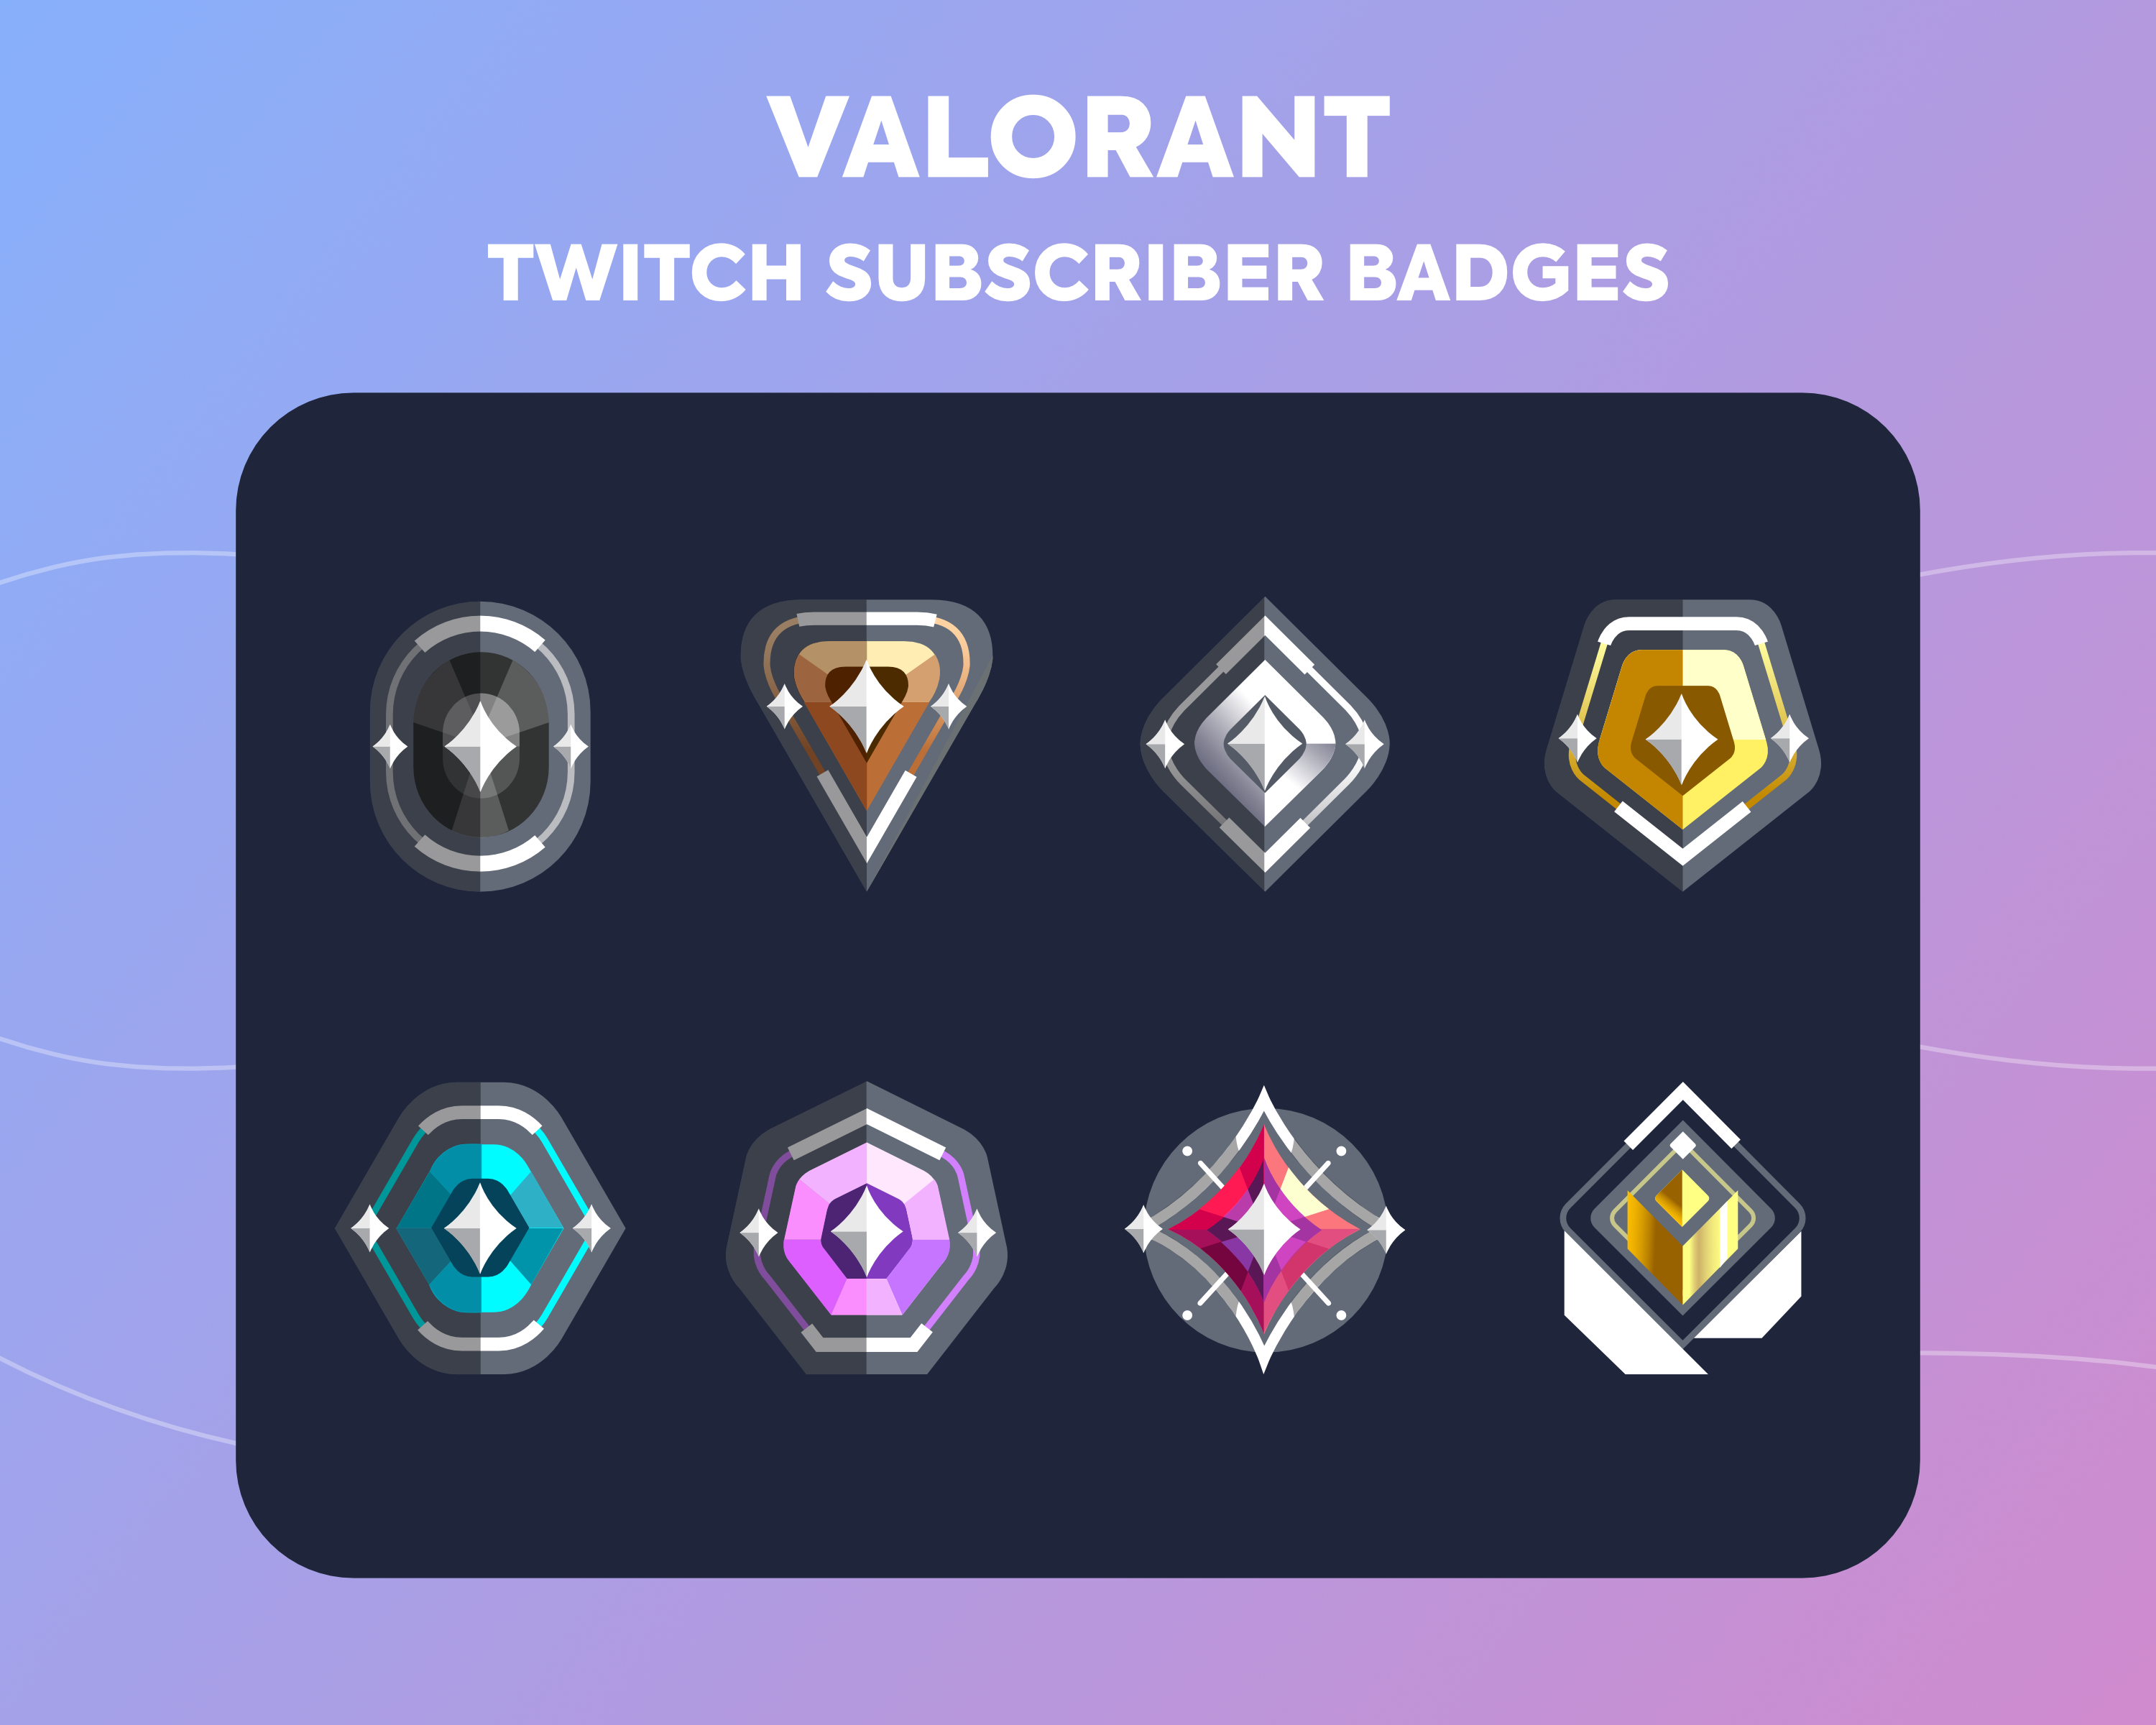 Twitch Sub Badges Cheer Bit Badges Valorant Ranks Etsy Twitch Badge Which Is Correct